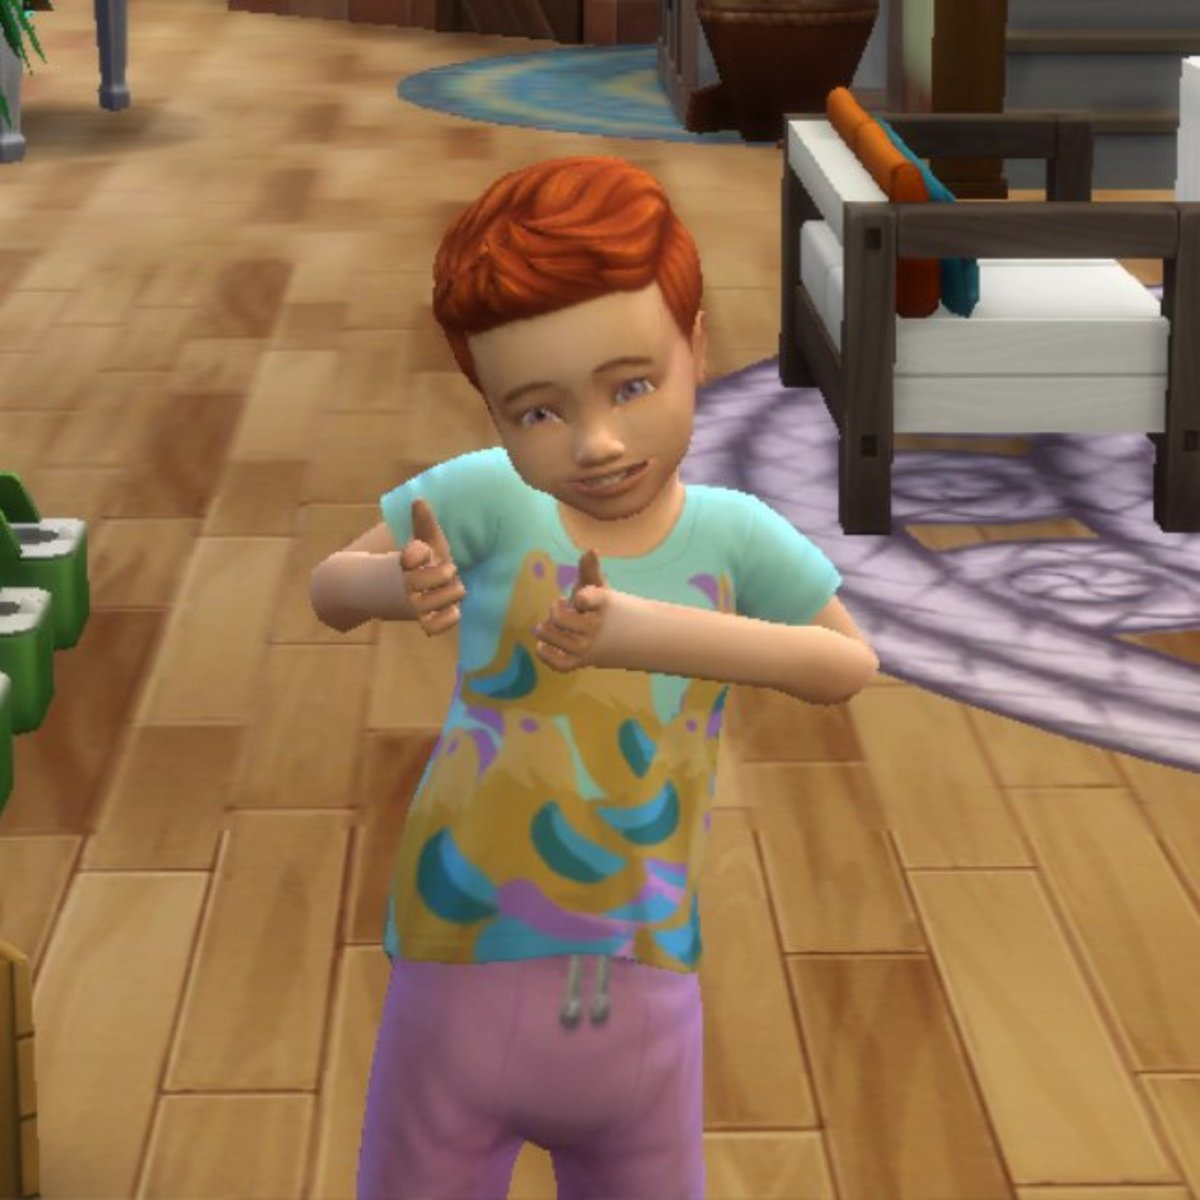 """The Sims 4"" 100 Baby Challenge Tips: 10 Winning Strategies"